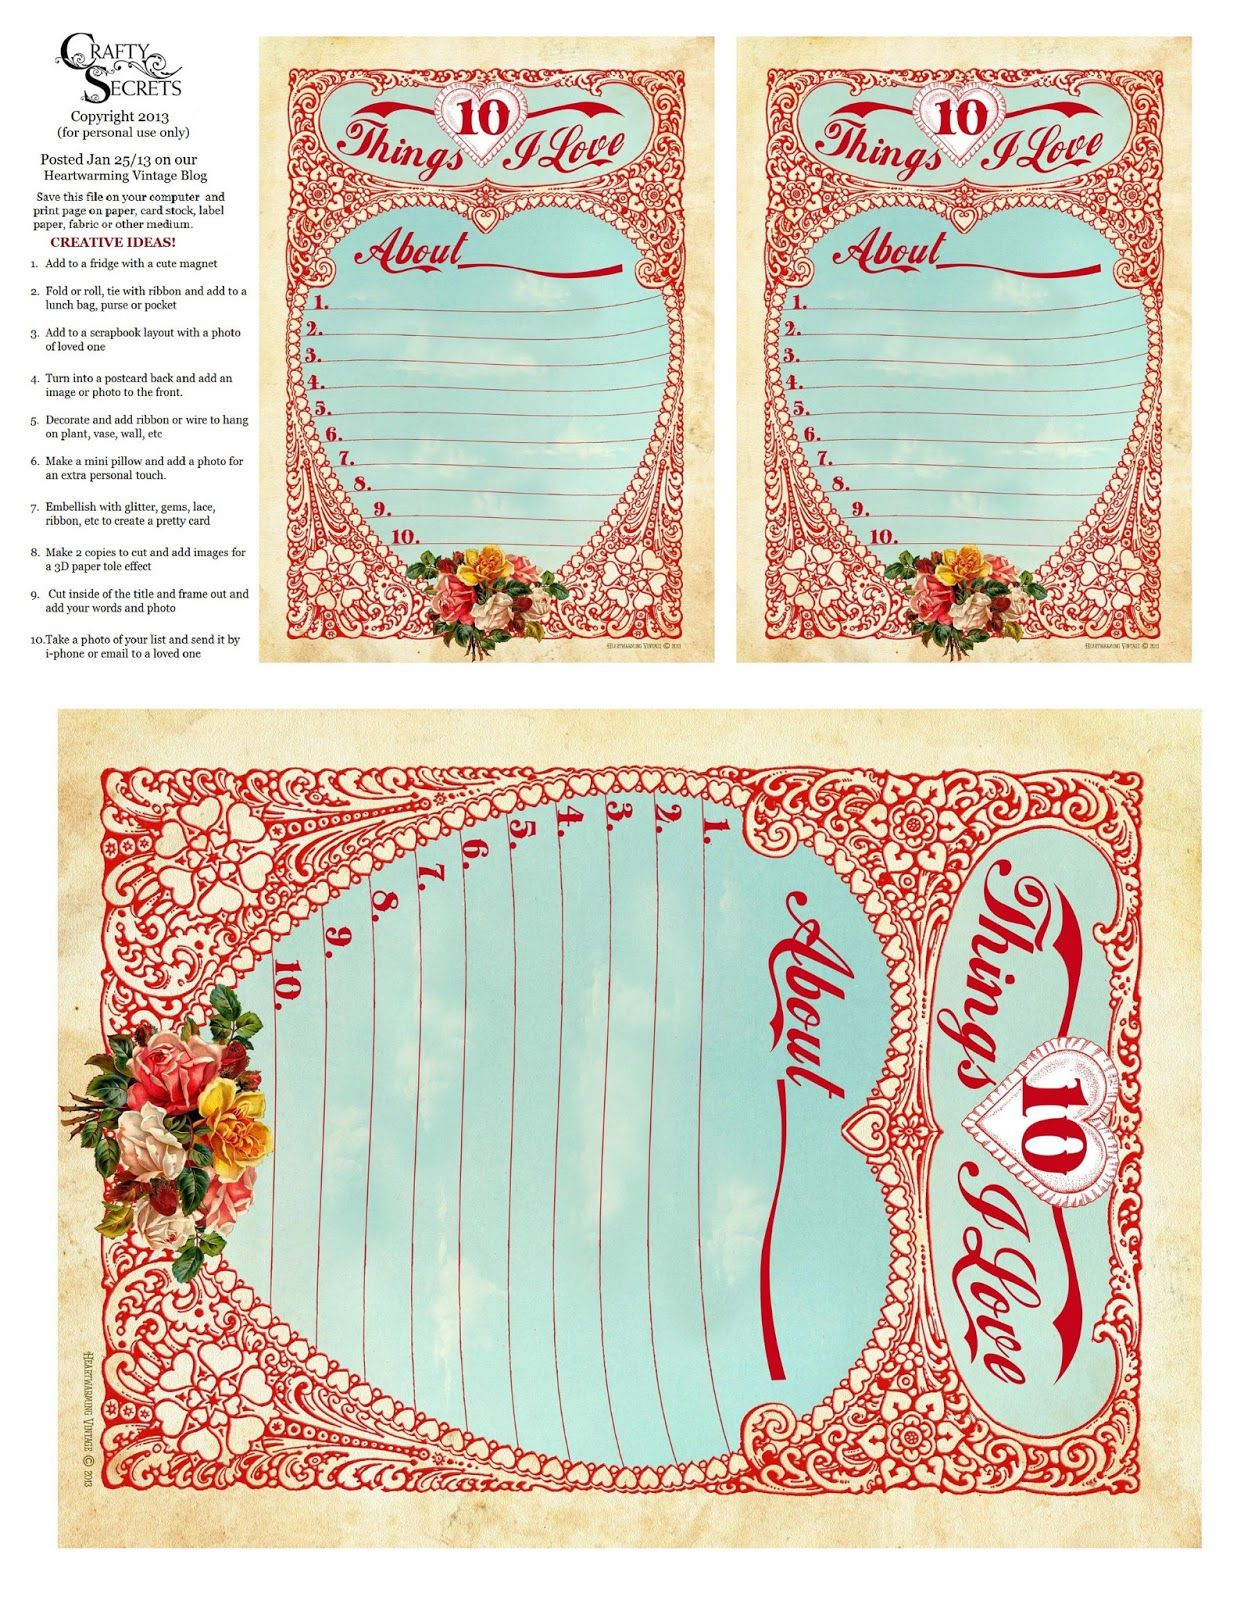 crafty secrets vintage paper crafts, stamping ideas: our free 10